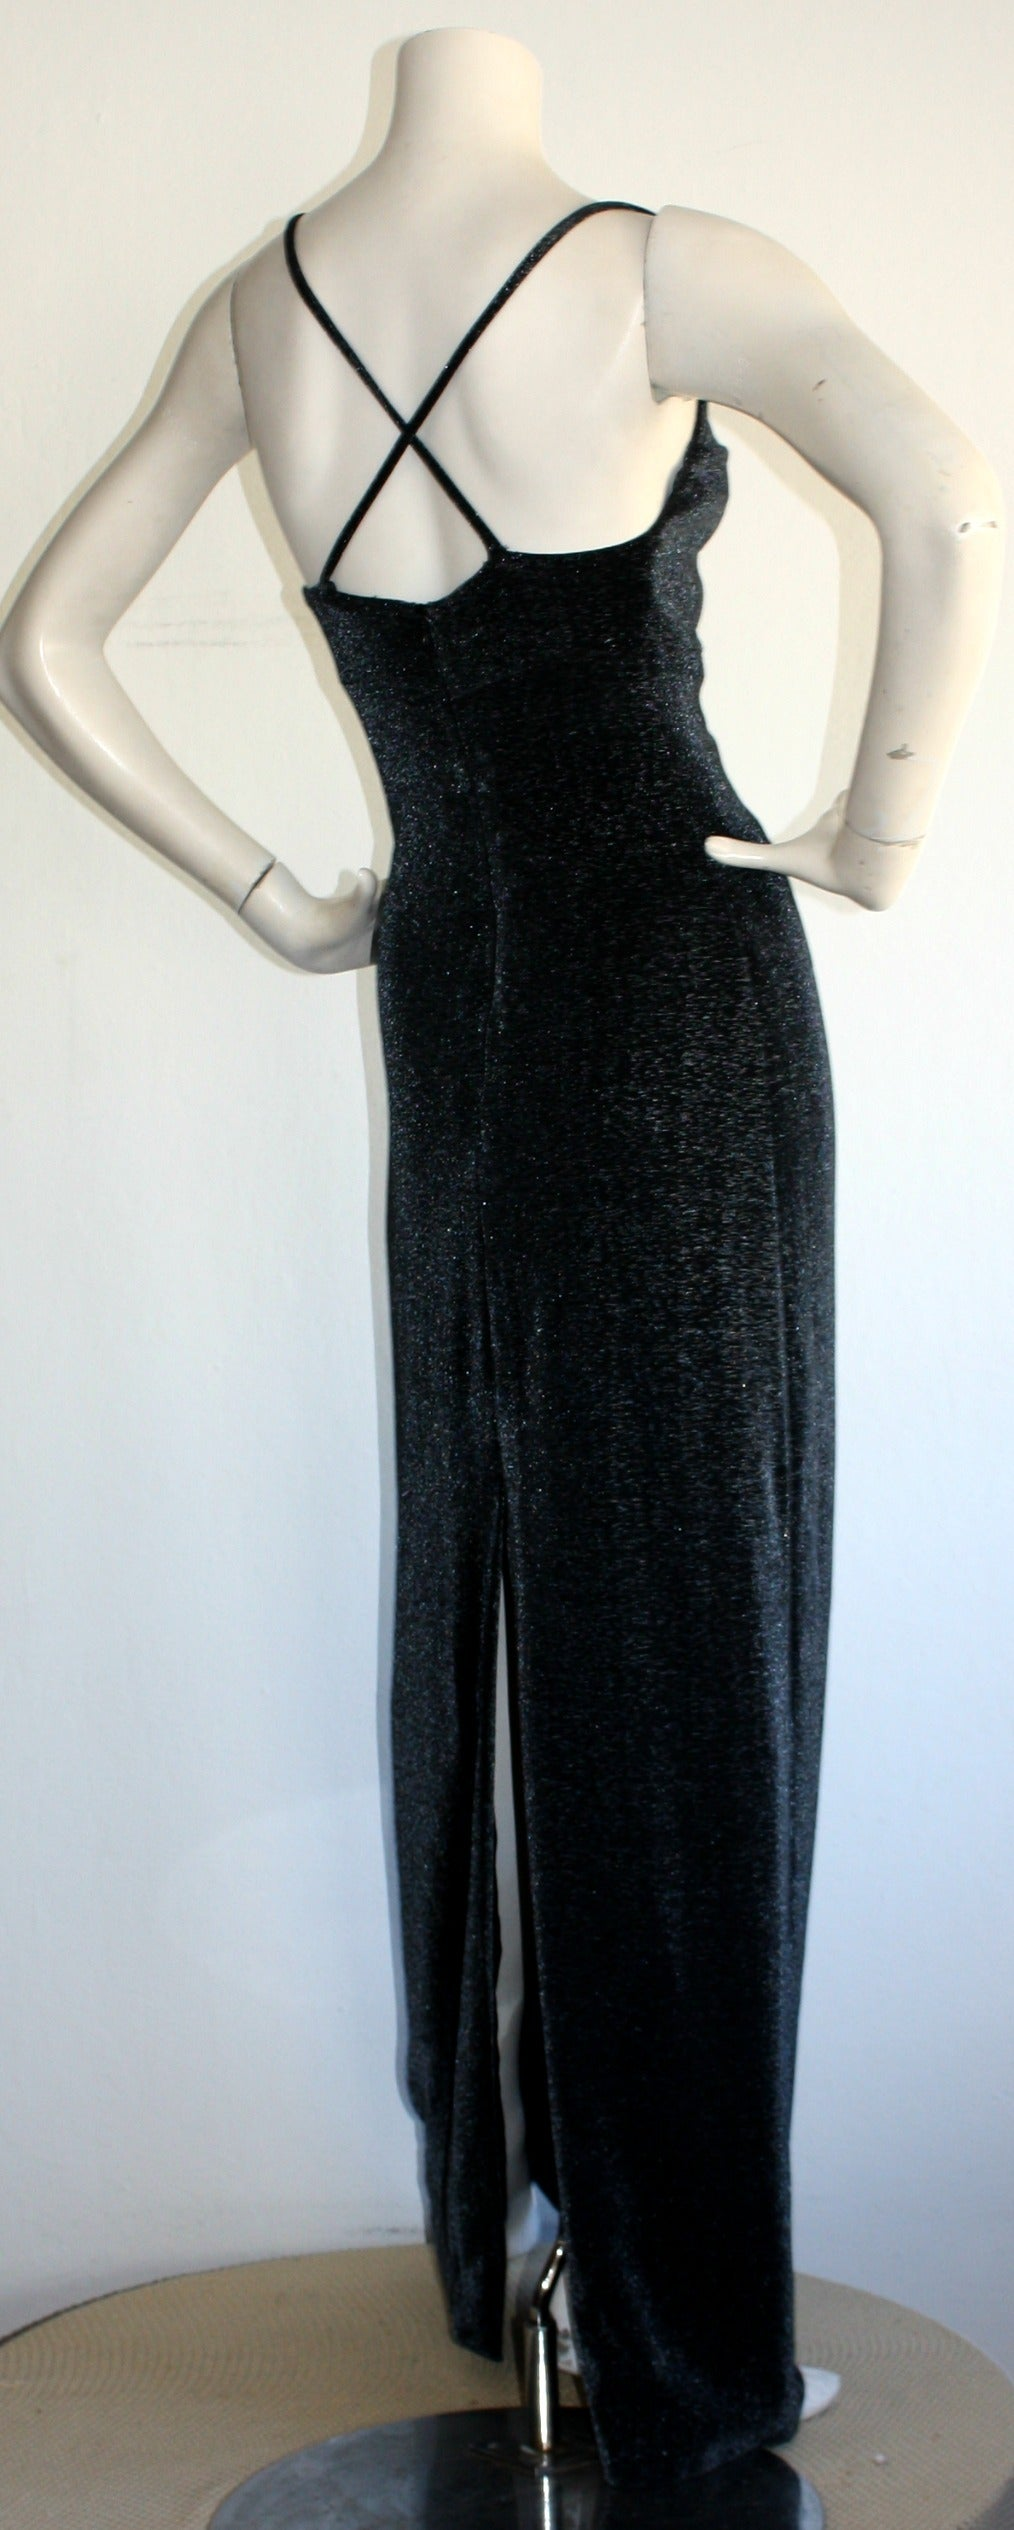 Stunning vintage Gianni Versace 'Versus' gown! Beautiful black/gray/silver metallic stretch material, with striking criss-cross back straps. Amazing construction, with a chic, flattering fit! Fully lined. In great condition. Marked Size EU